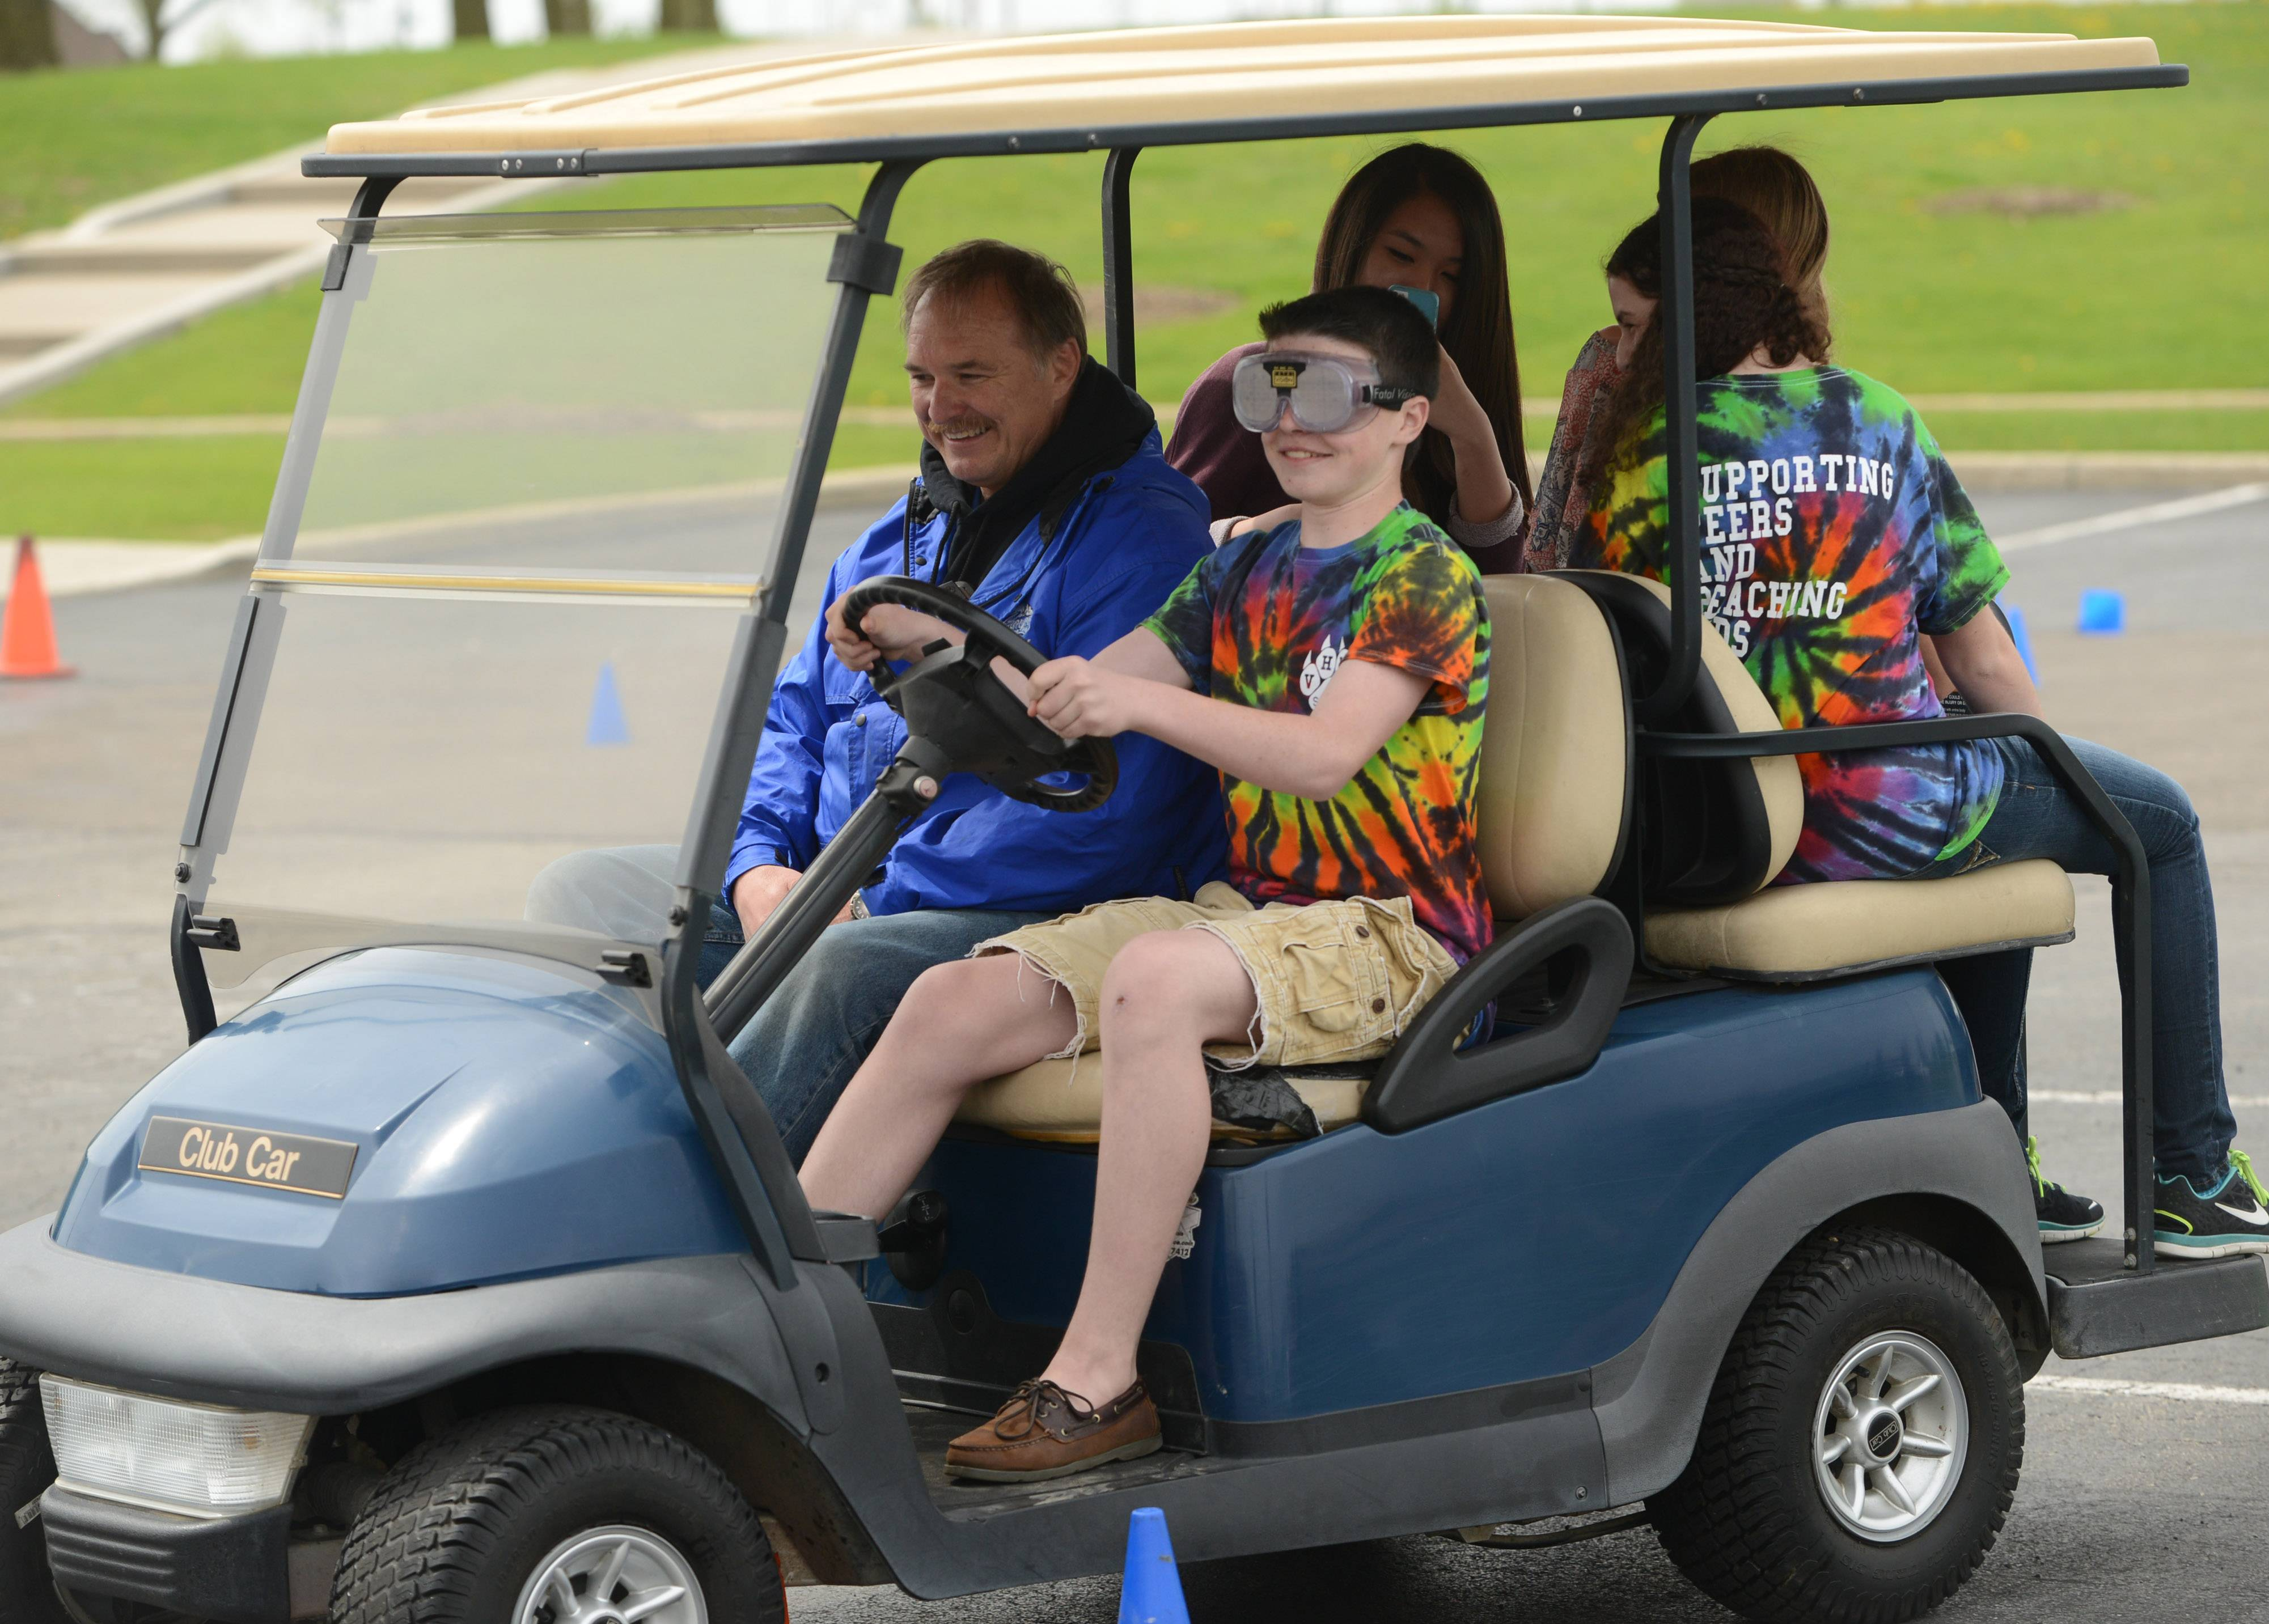 Vernon Hills High School freshman Zak Baumann drives the obstacle course Wednesday wearing special goggles simulating drunken driving. Security guard Al Frank, left, points out various obstacles during the prom week activity.